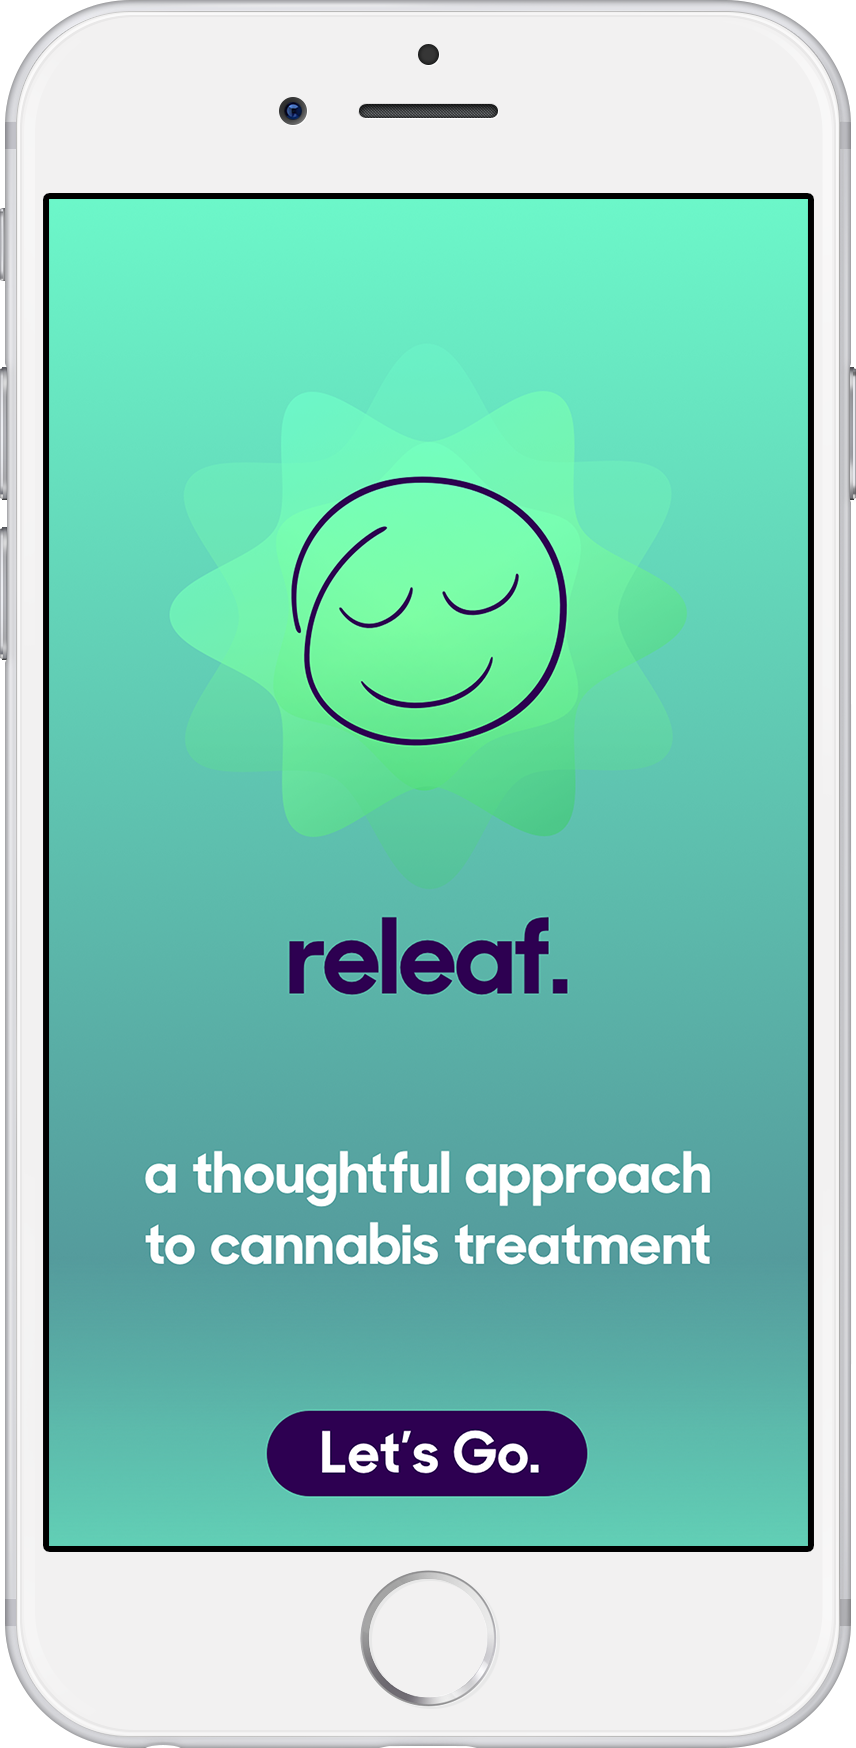 Releaf-Devices-Splashscreen.png